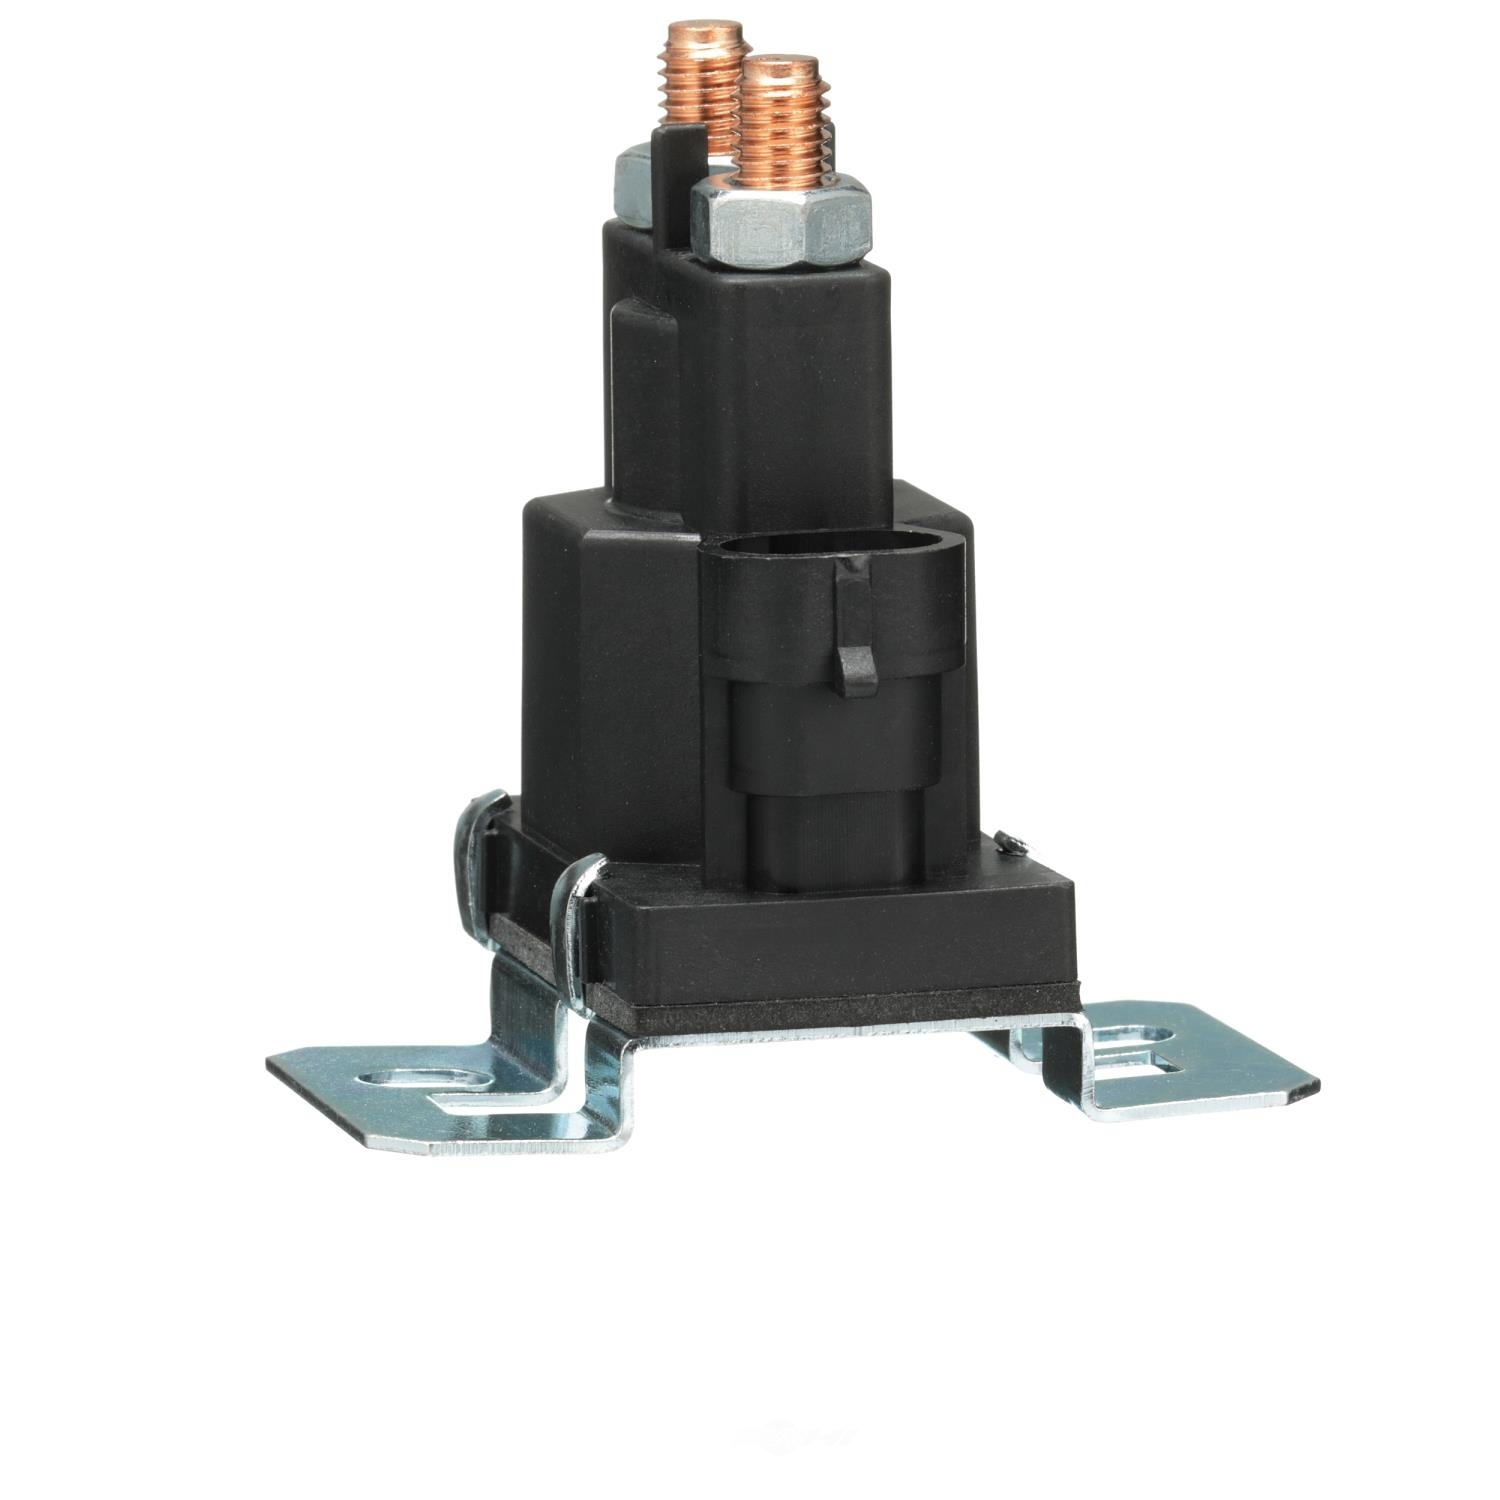 STANDARD MOTOR PRODUCTS - Battery Charge Relay - STA RY-1521